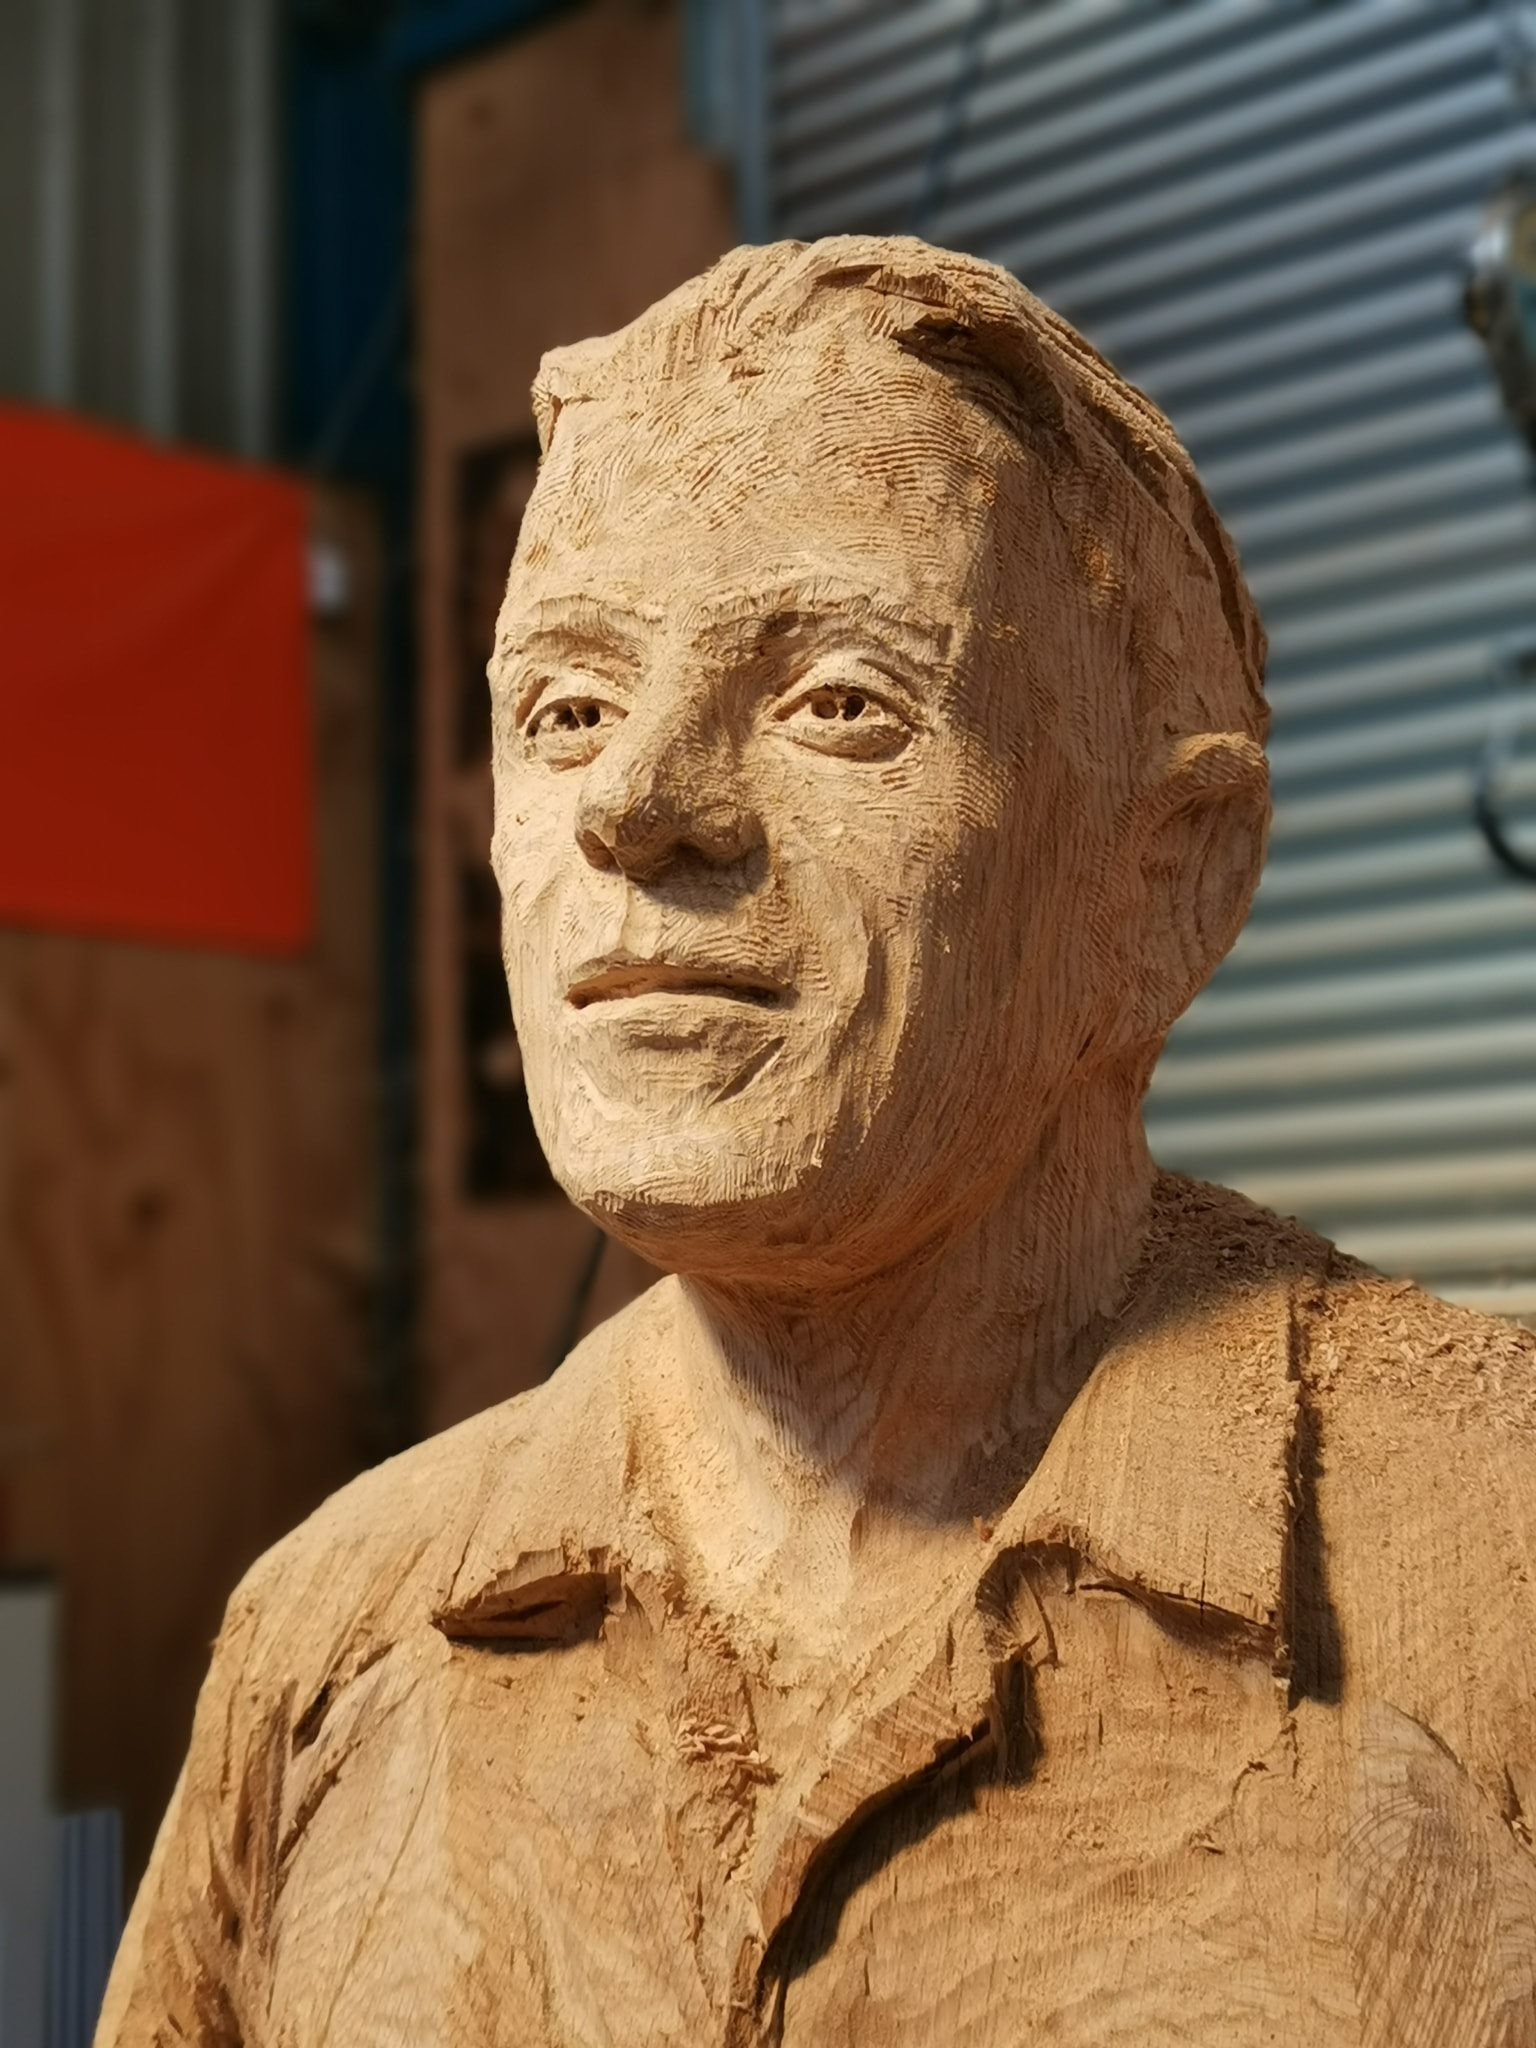 a close up of Billy Houliston's face carved in oak by simon o'rourke. The face is coarsely textured and demonstrates the impact of some of Simon's favourite tools for carving faces